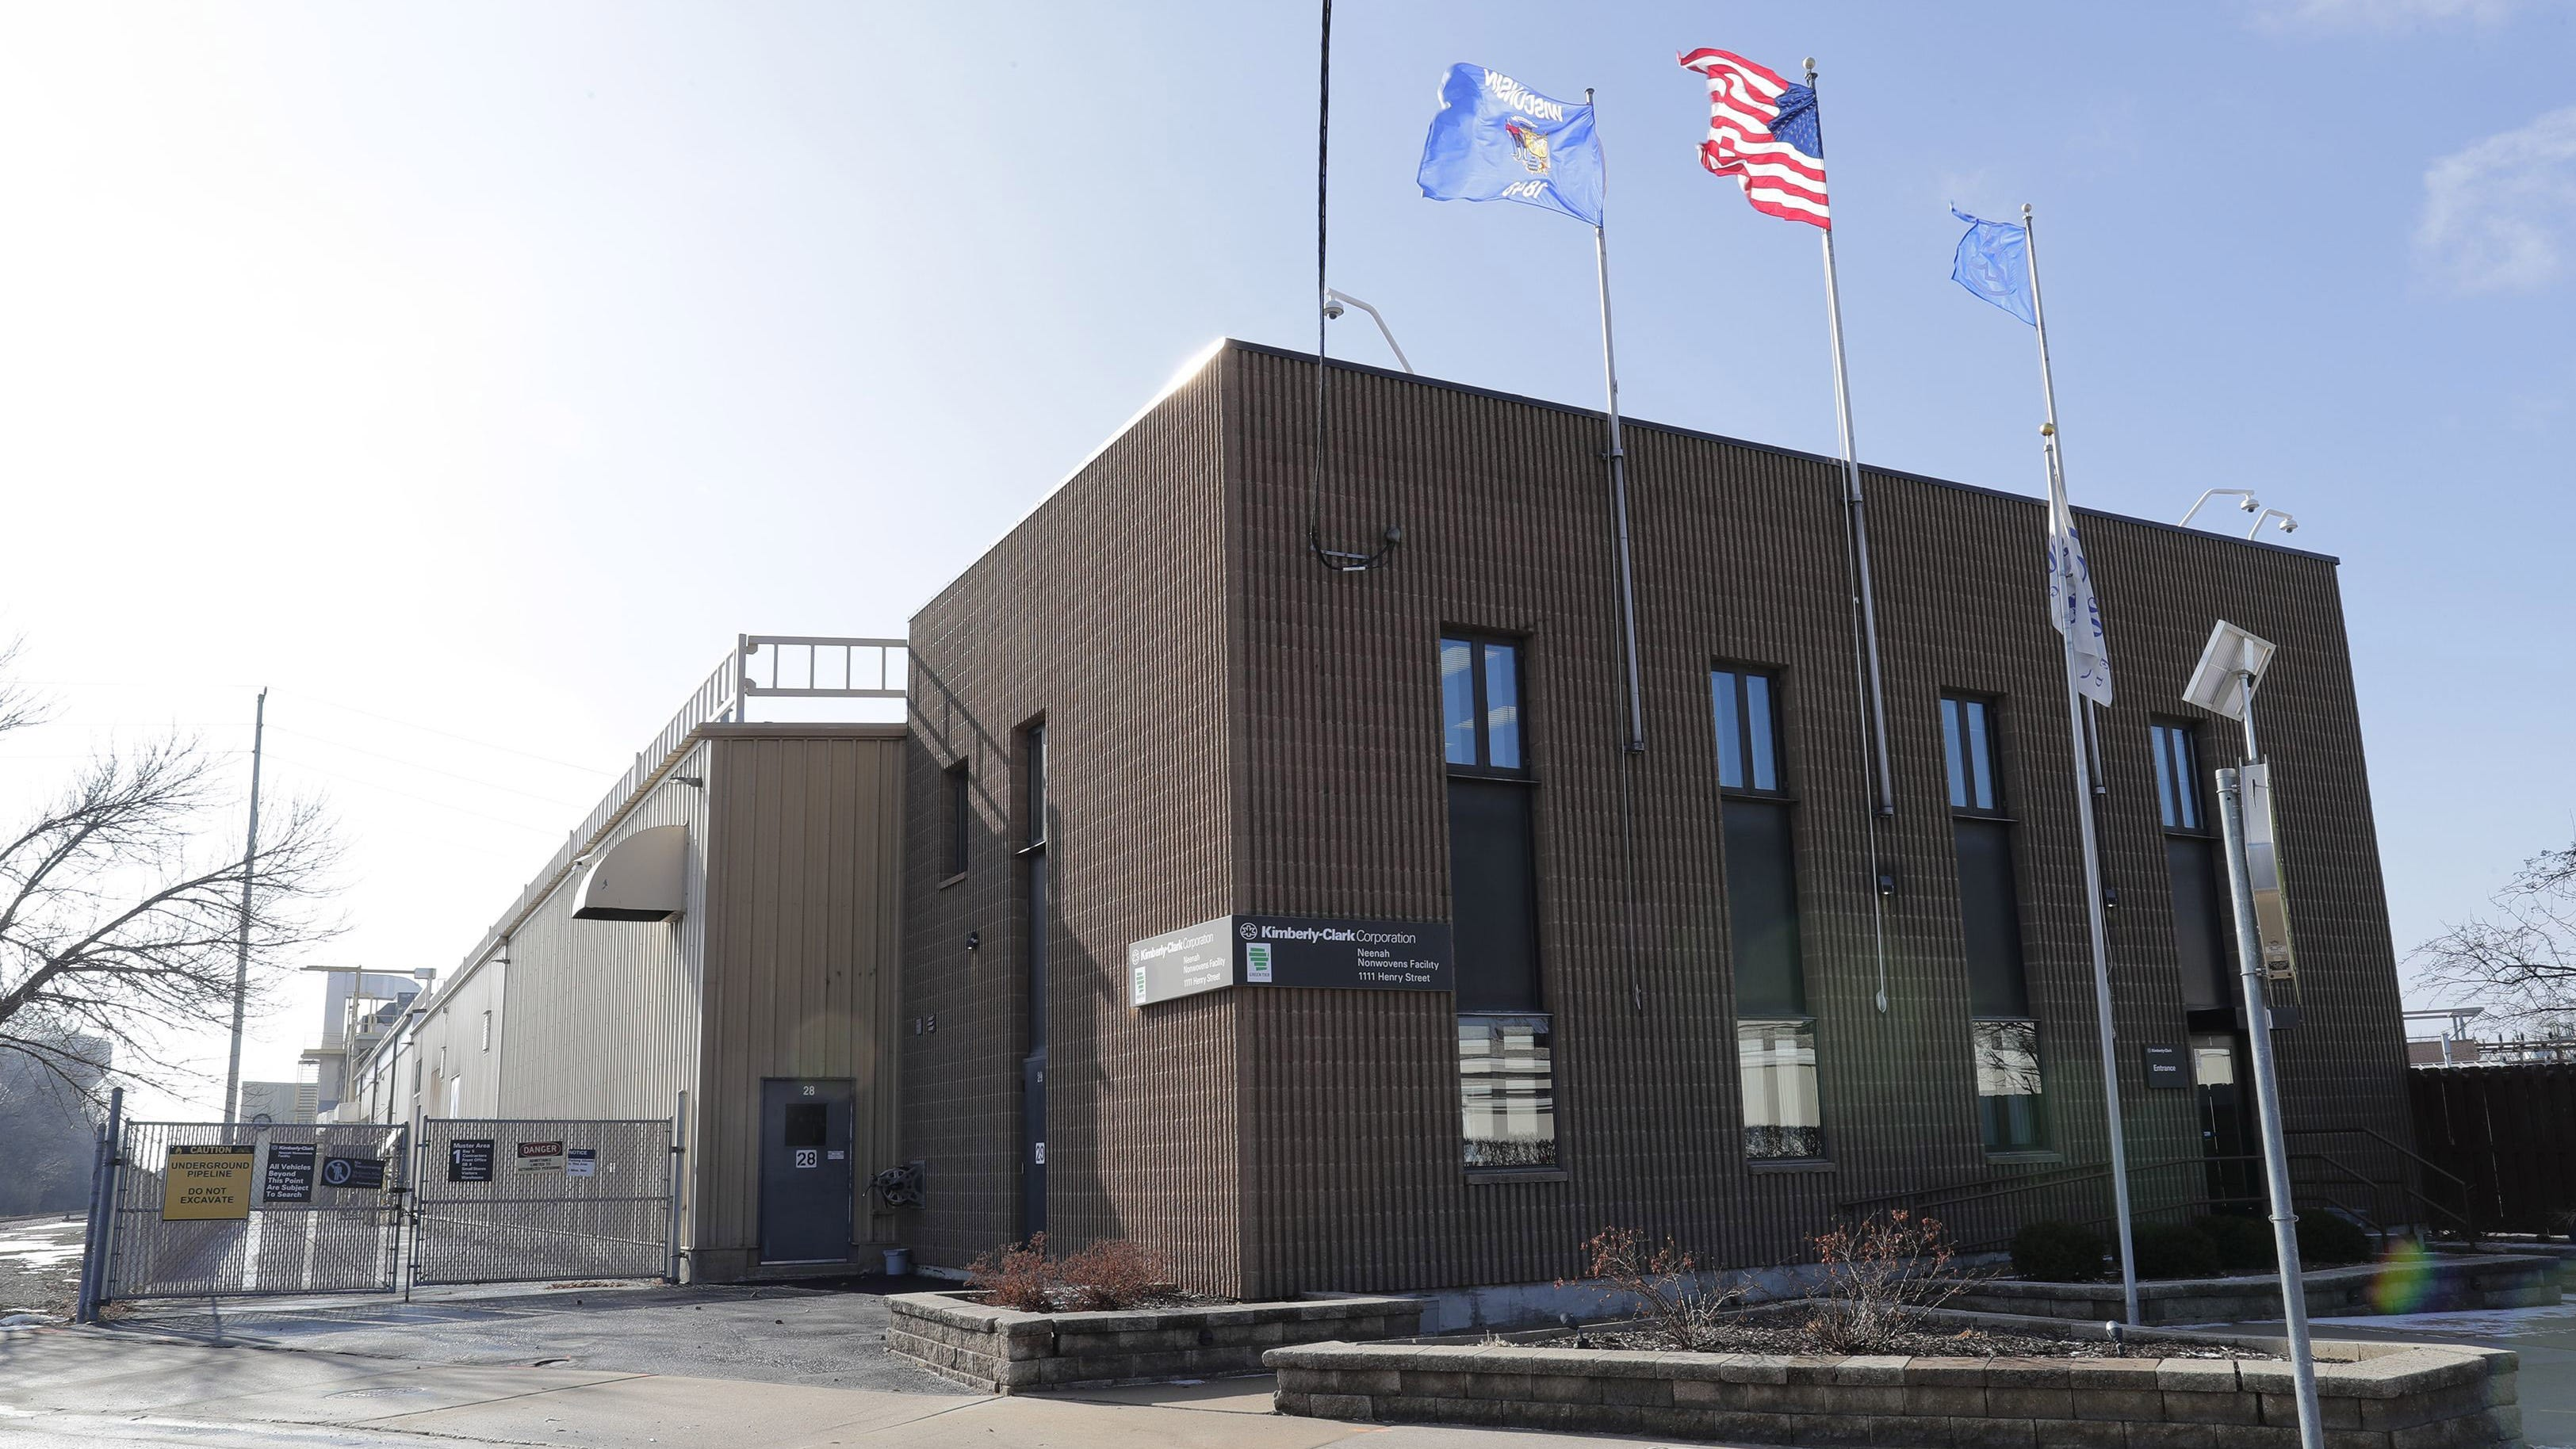 Kimberly-Clark Corp.'s Neenah Nonwovens Facility at 1111 Henry St. in Neenah will be closed.